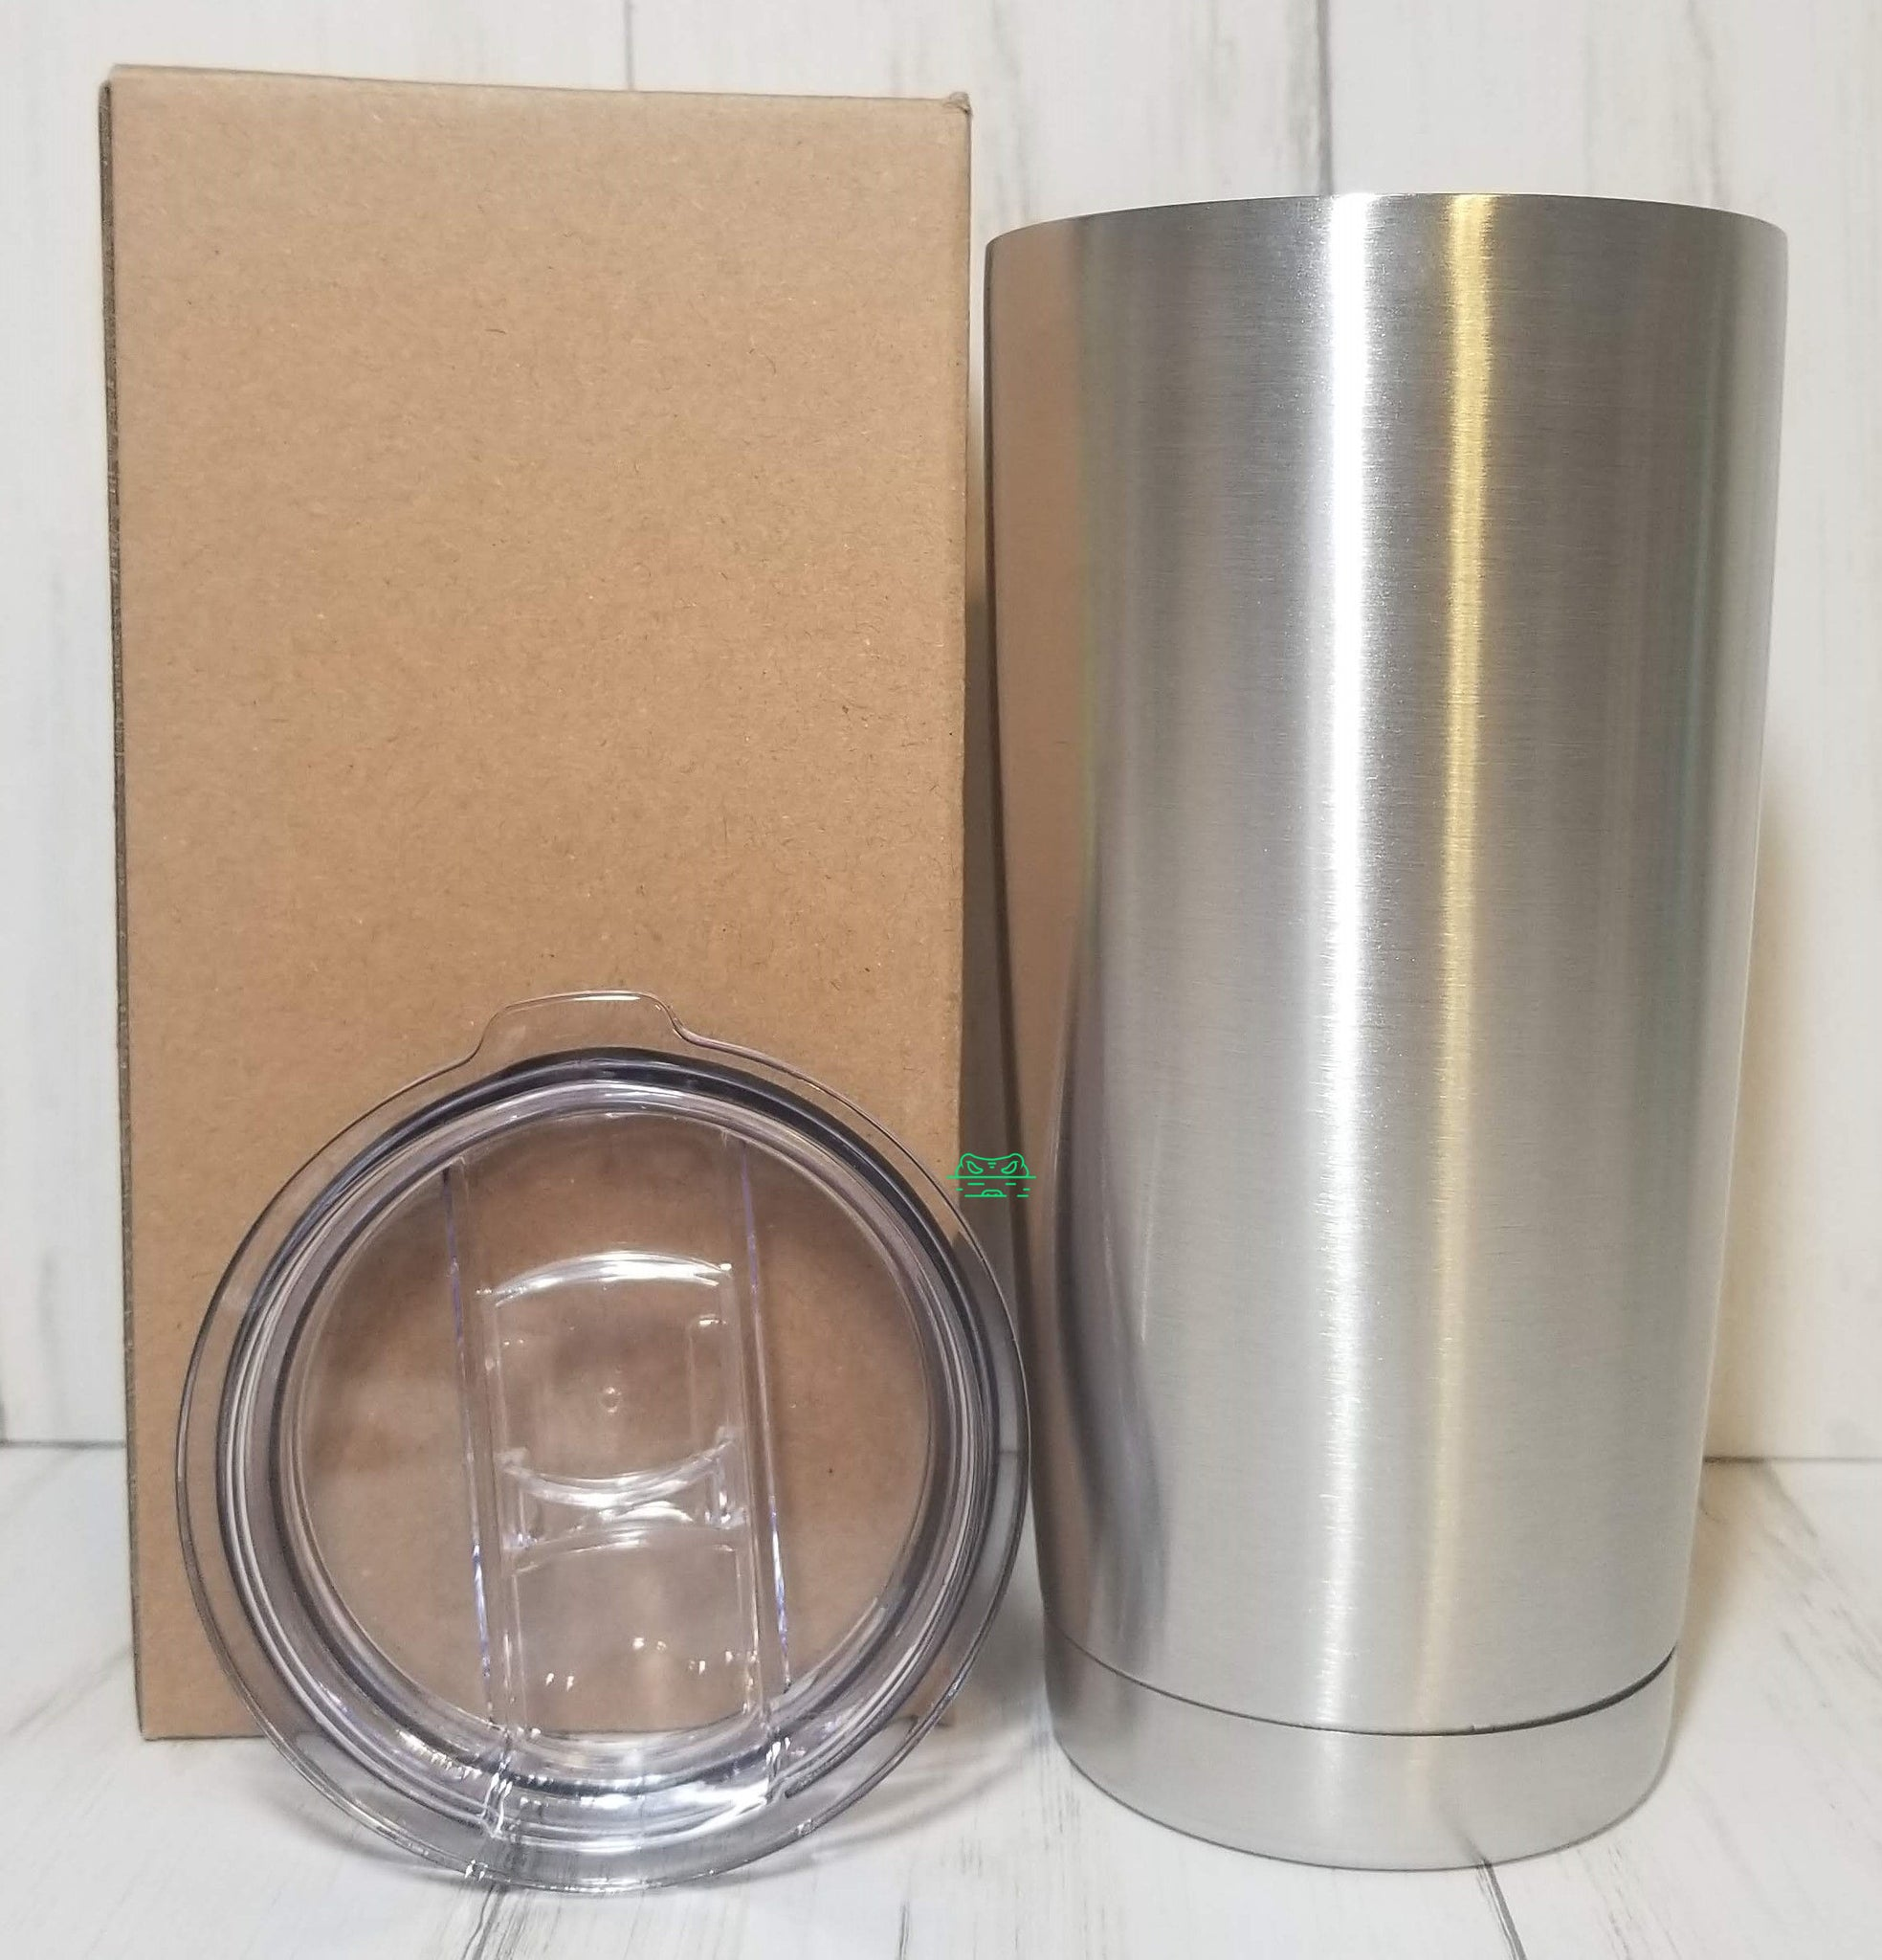 20 oz. Stainless Steel Tumbler Case (24)